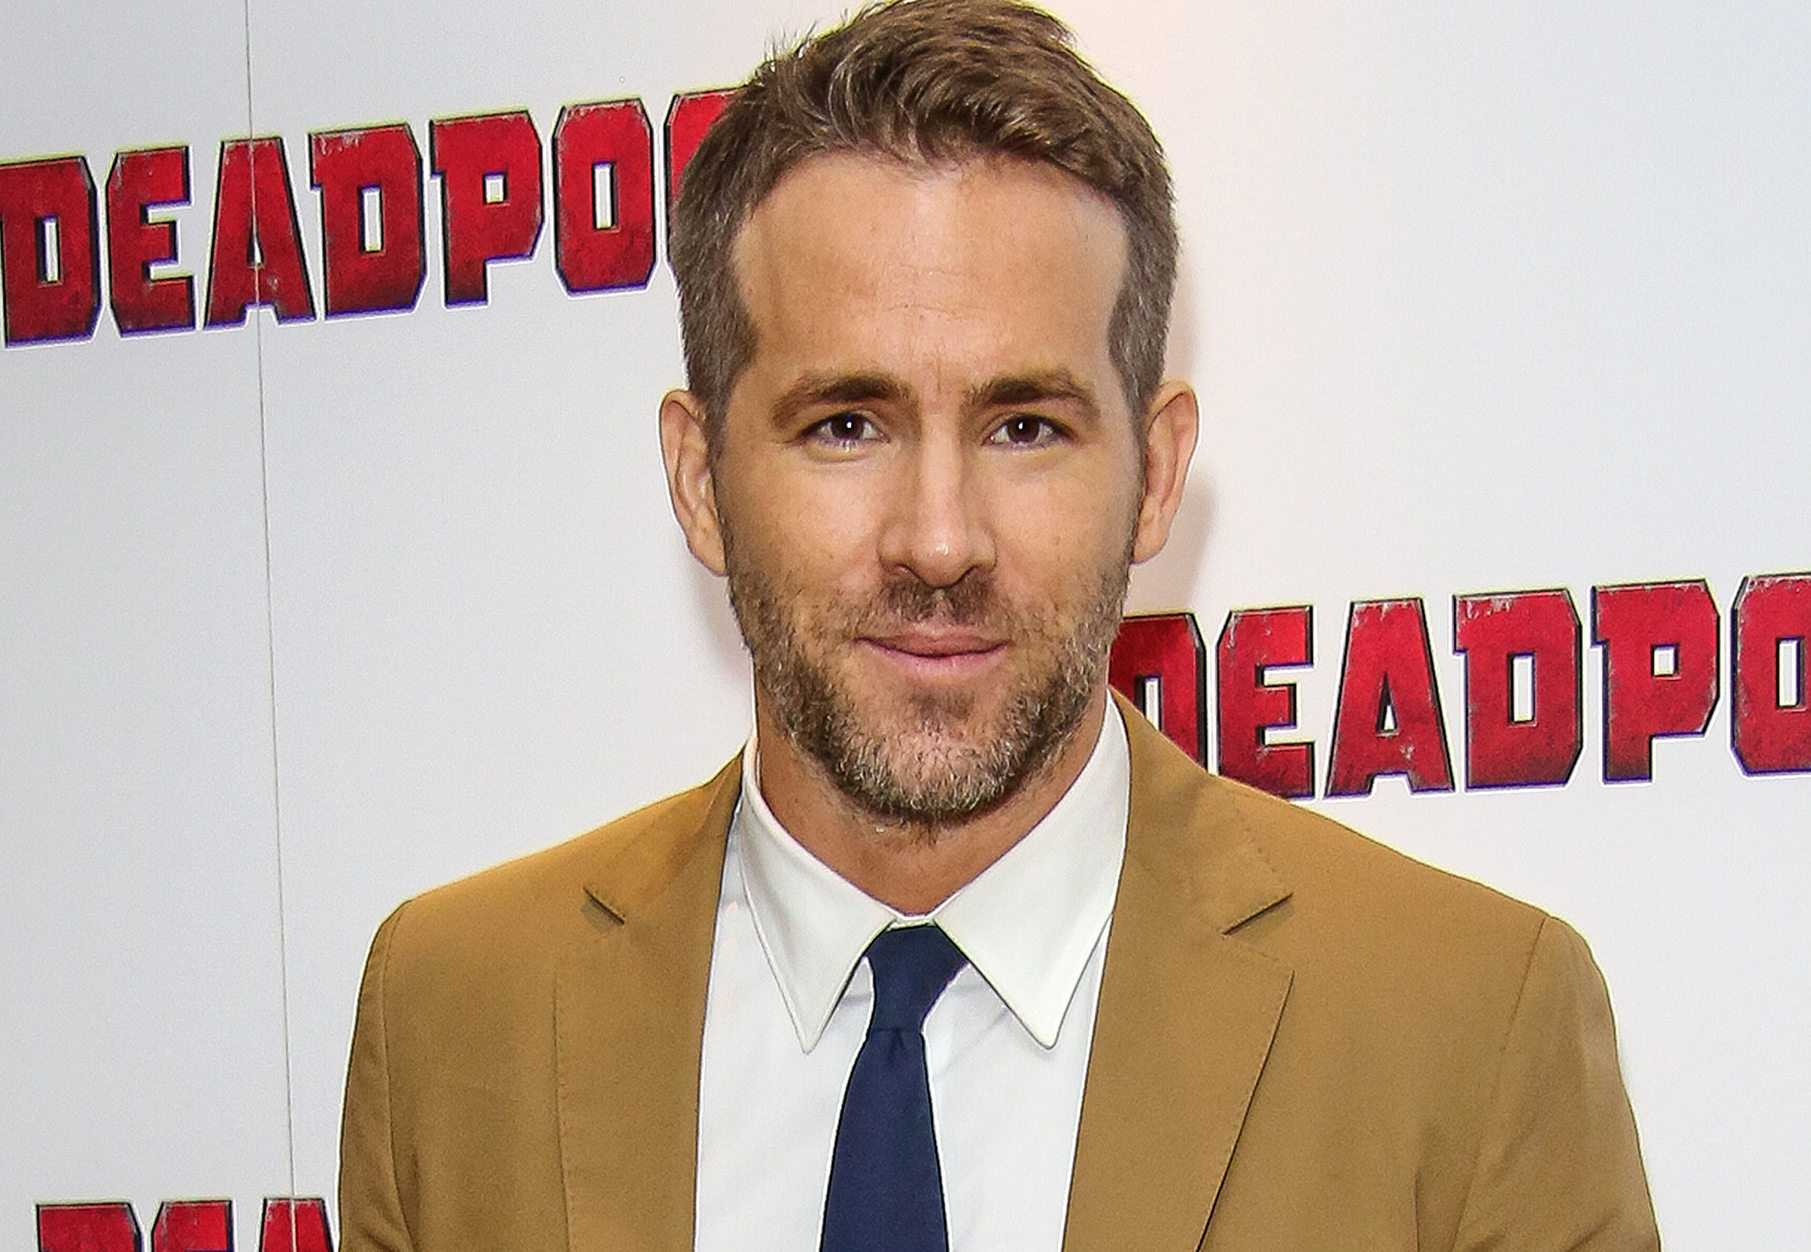 Ryan Reynolds Career